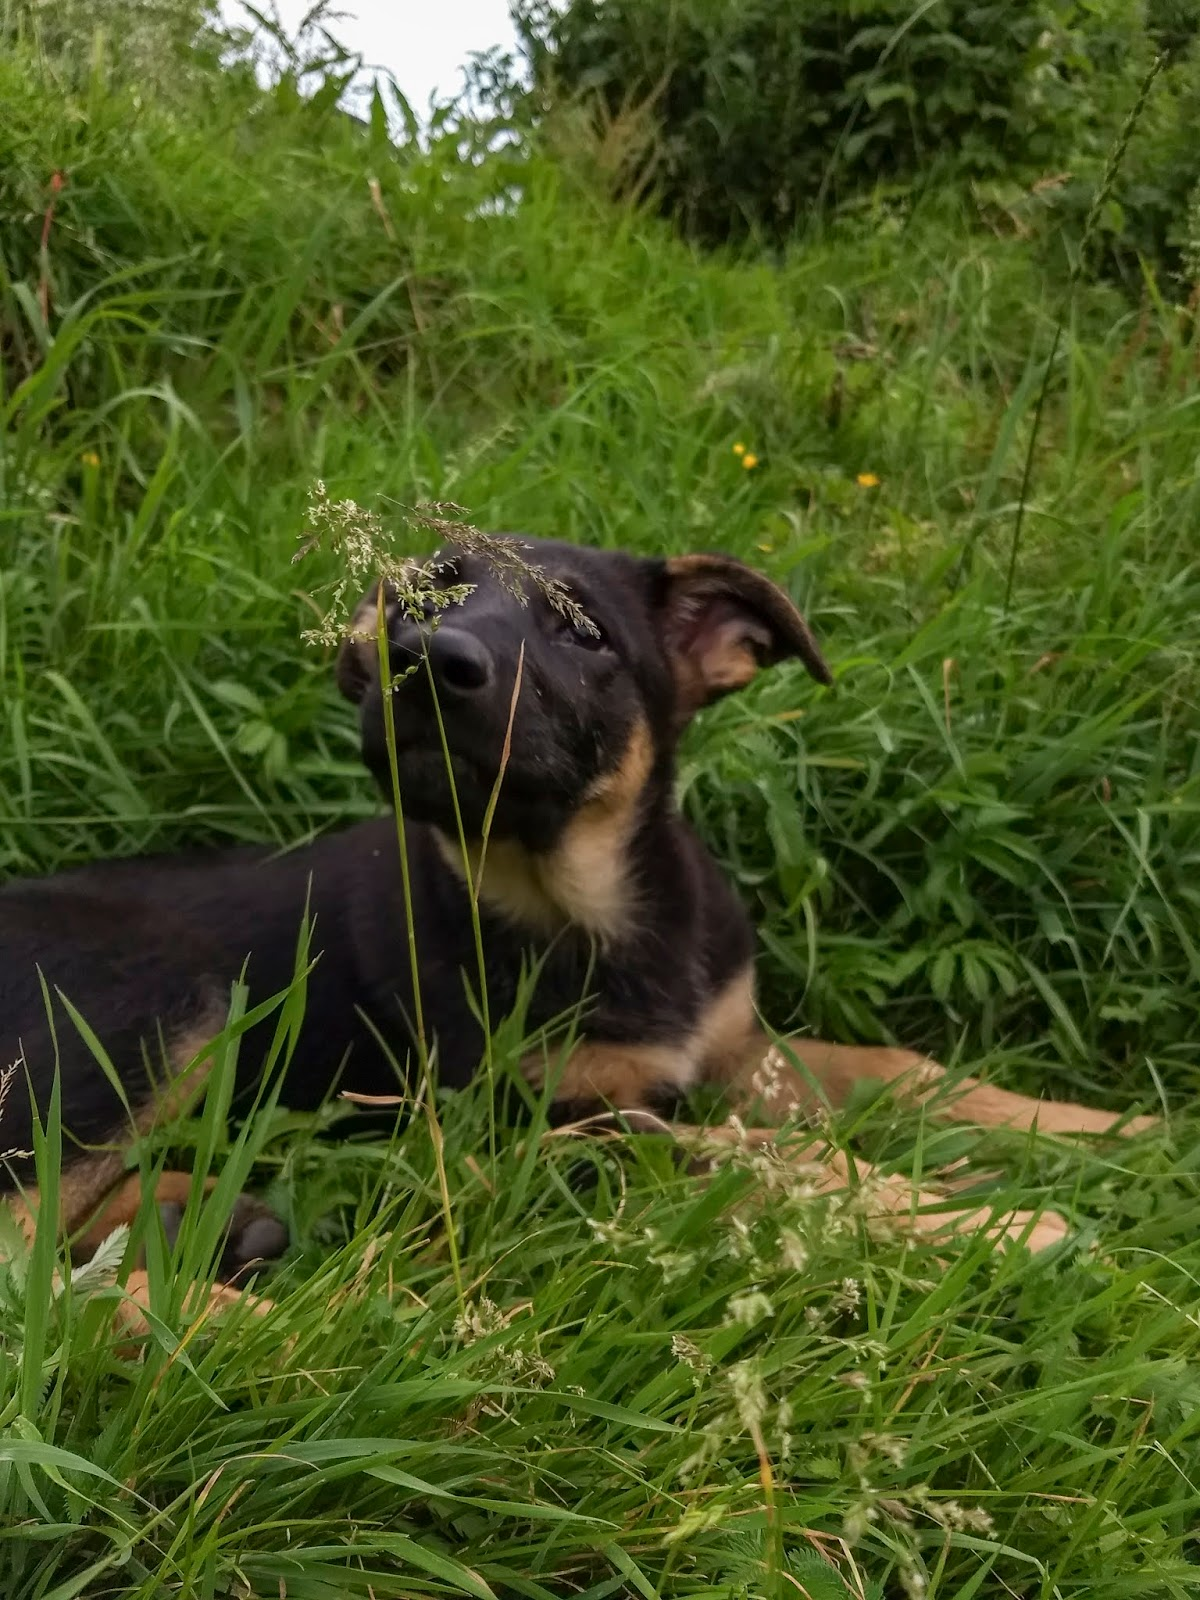 A German Shepherd puppy lying in long grass sniffing grass seeds.